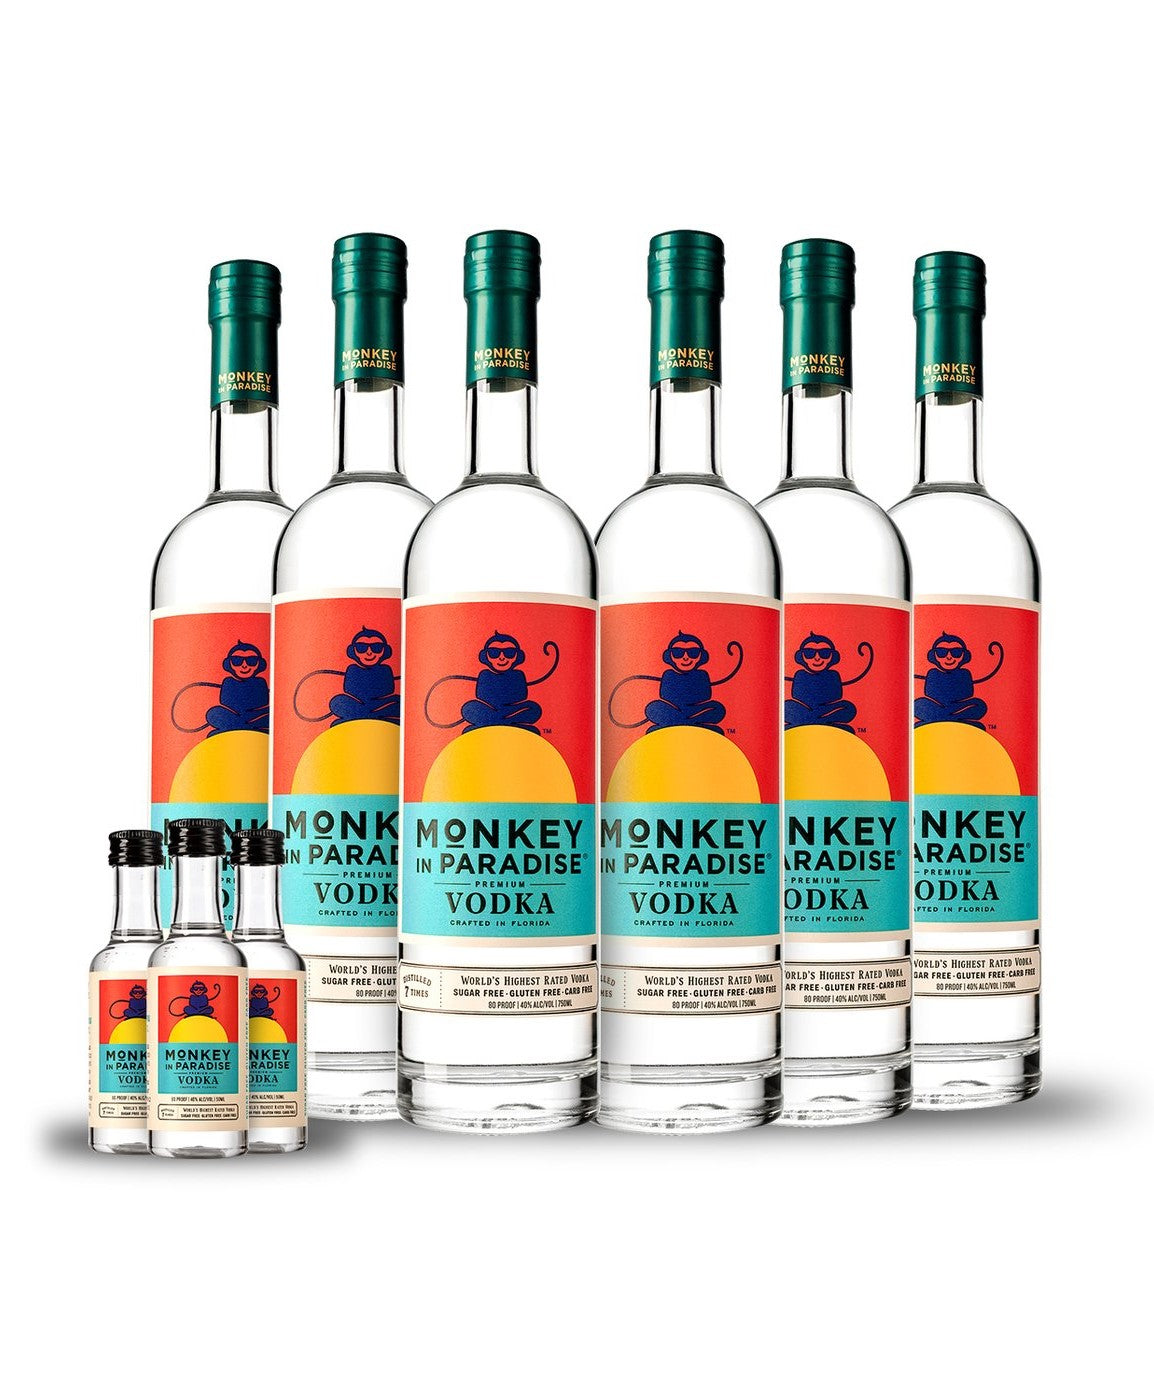 Monkey In Paradise Vodka 6-Pack Case